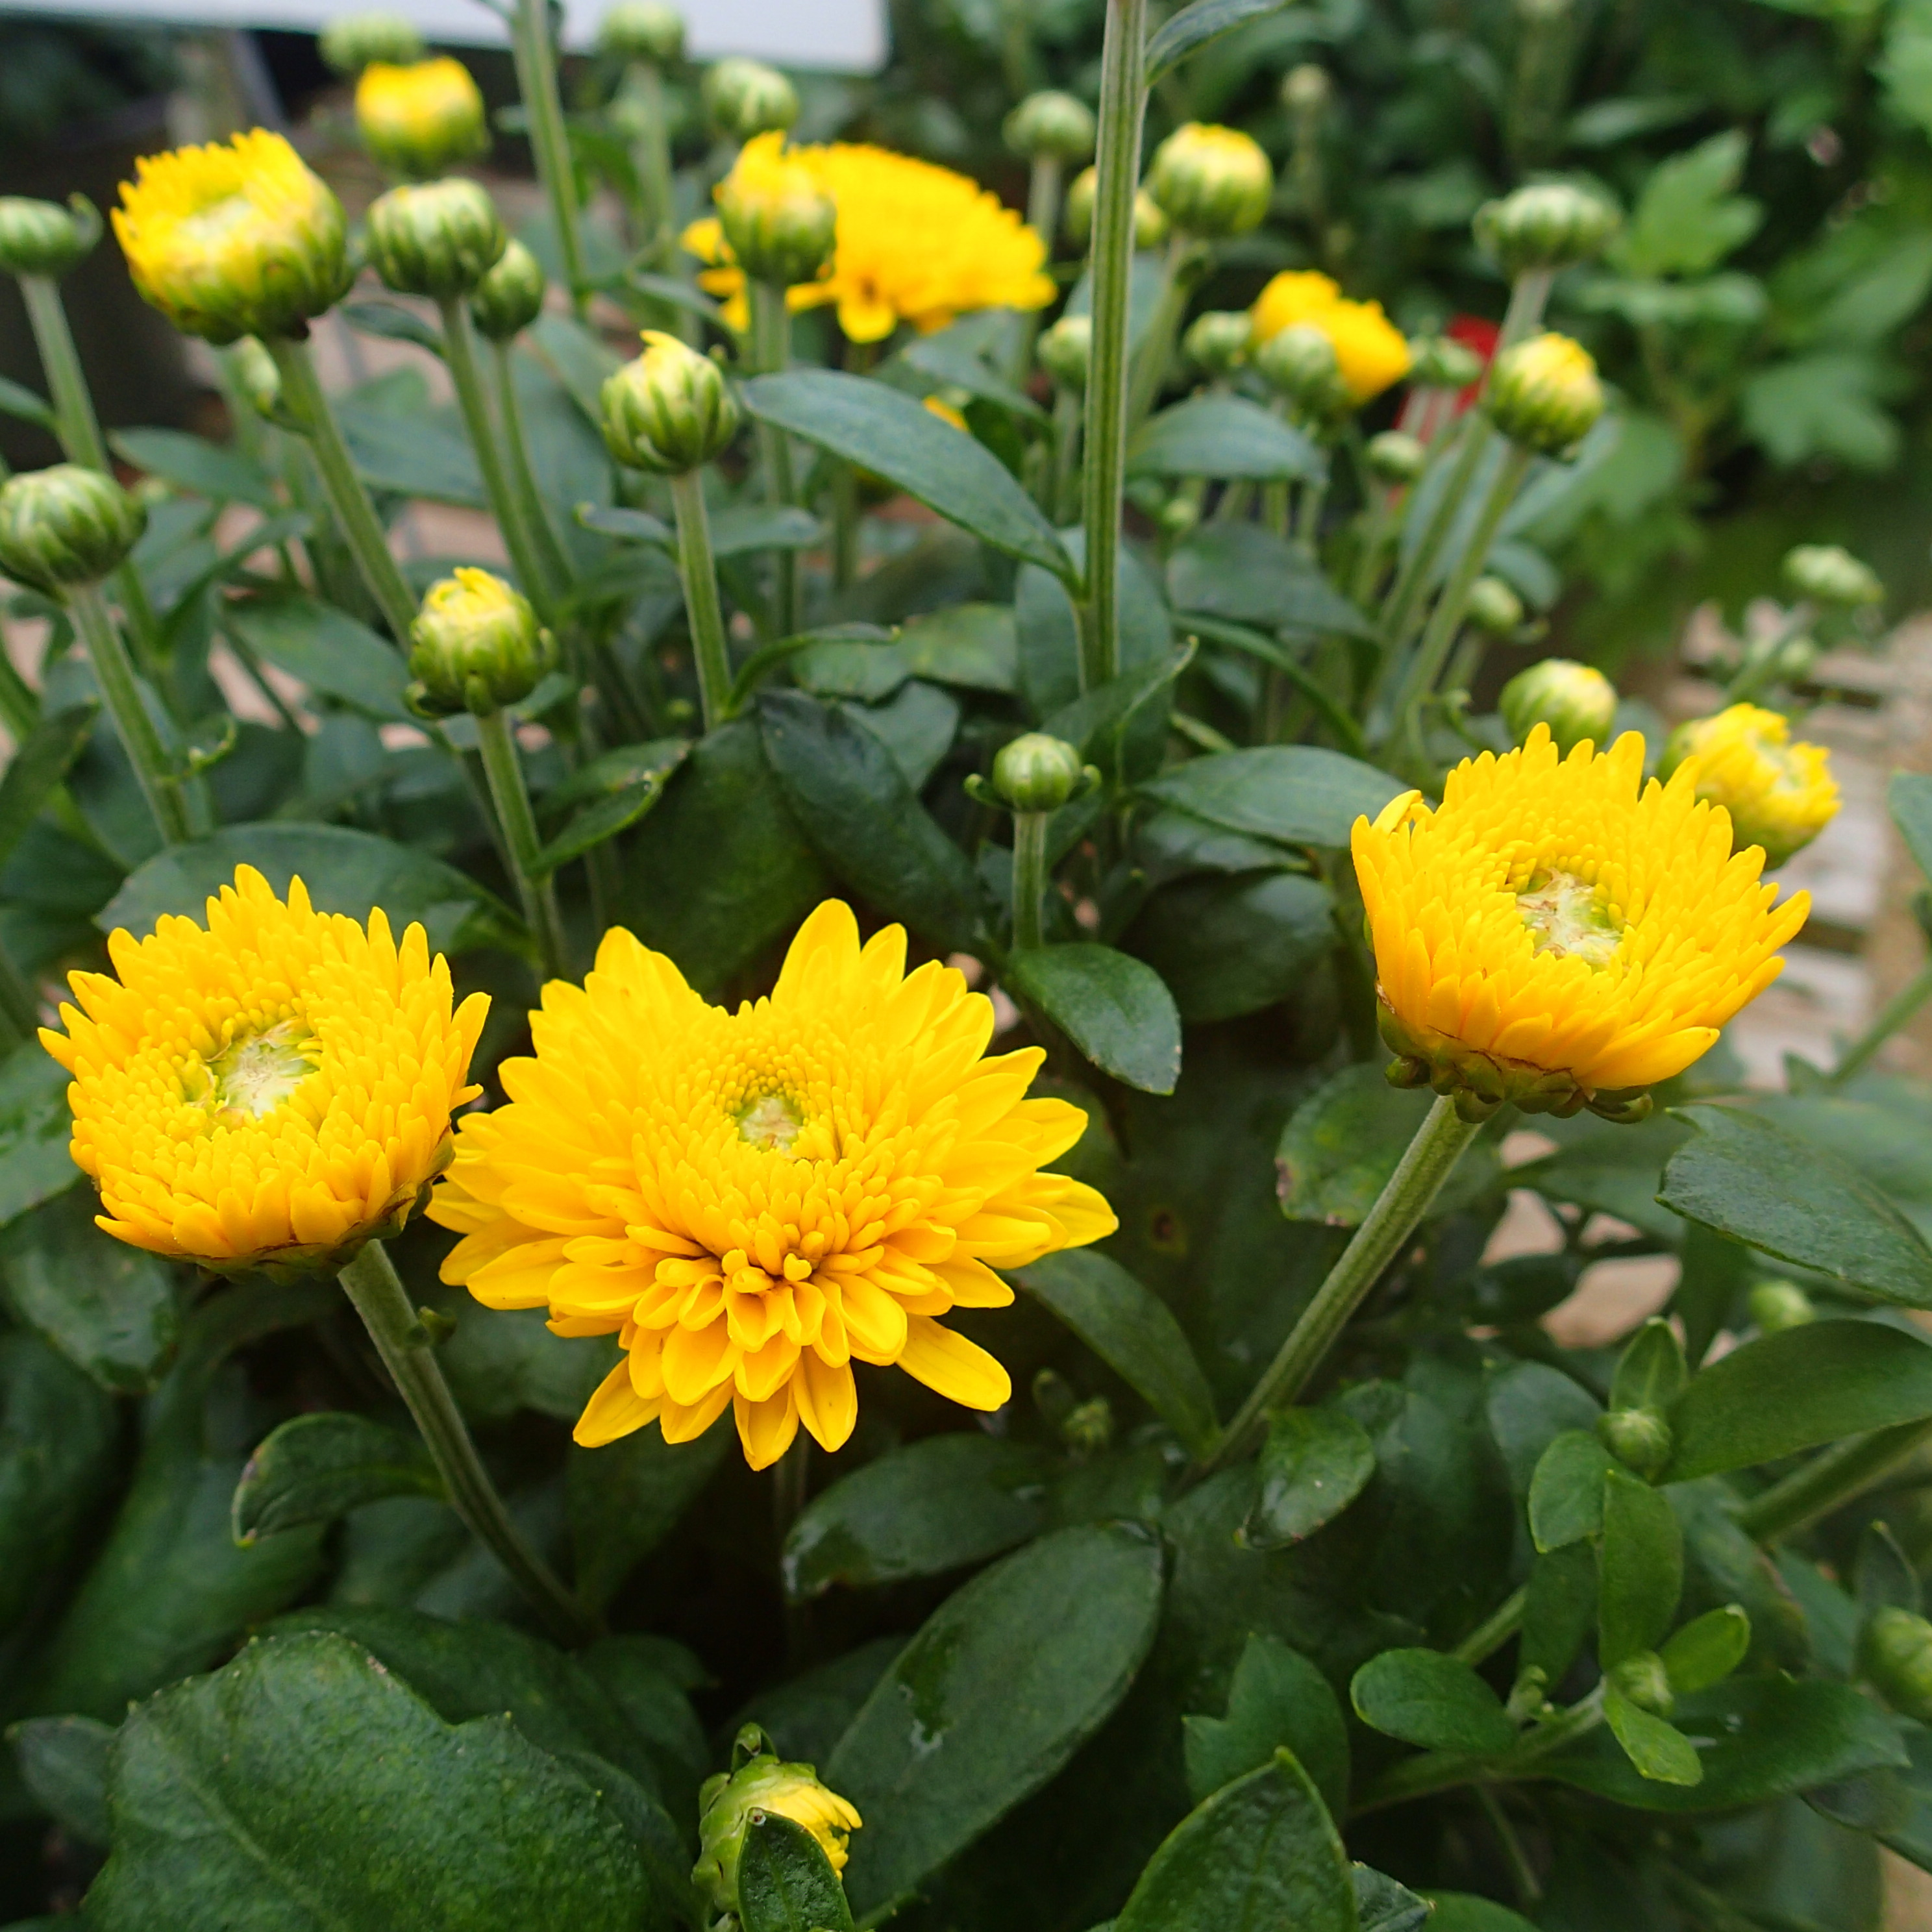 Fall Flower Mums: What's Doing The Blooming? Fall Blooming Mums!